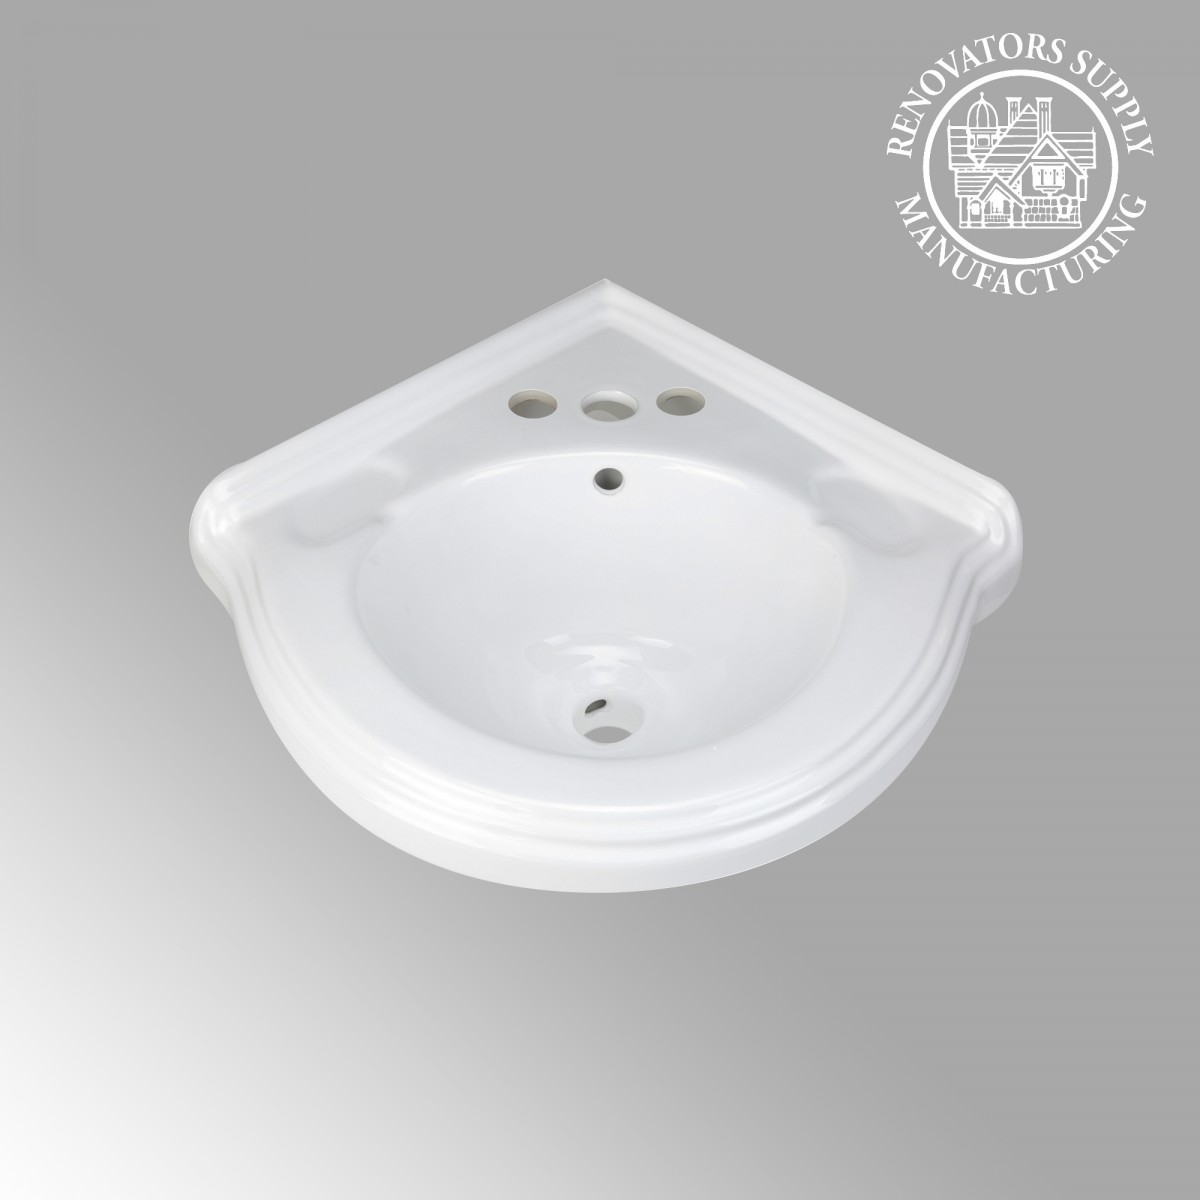 Bathroom Sinks That Mount On The Wall wall mount small bathroom sink white ceramic vitreous china